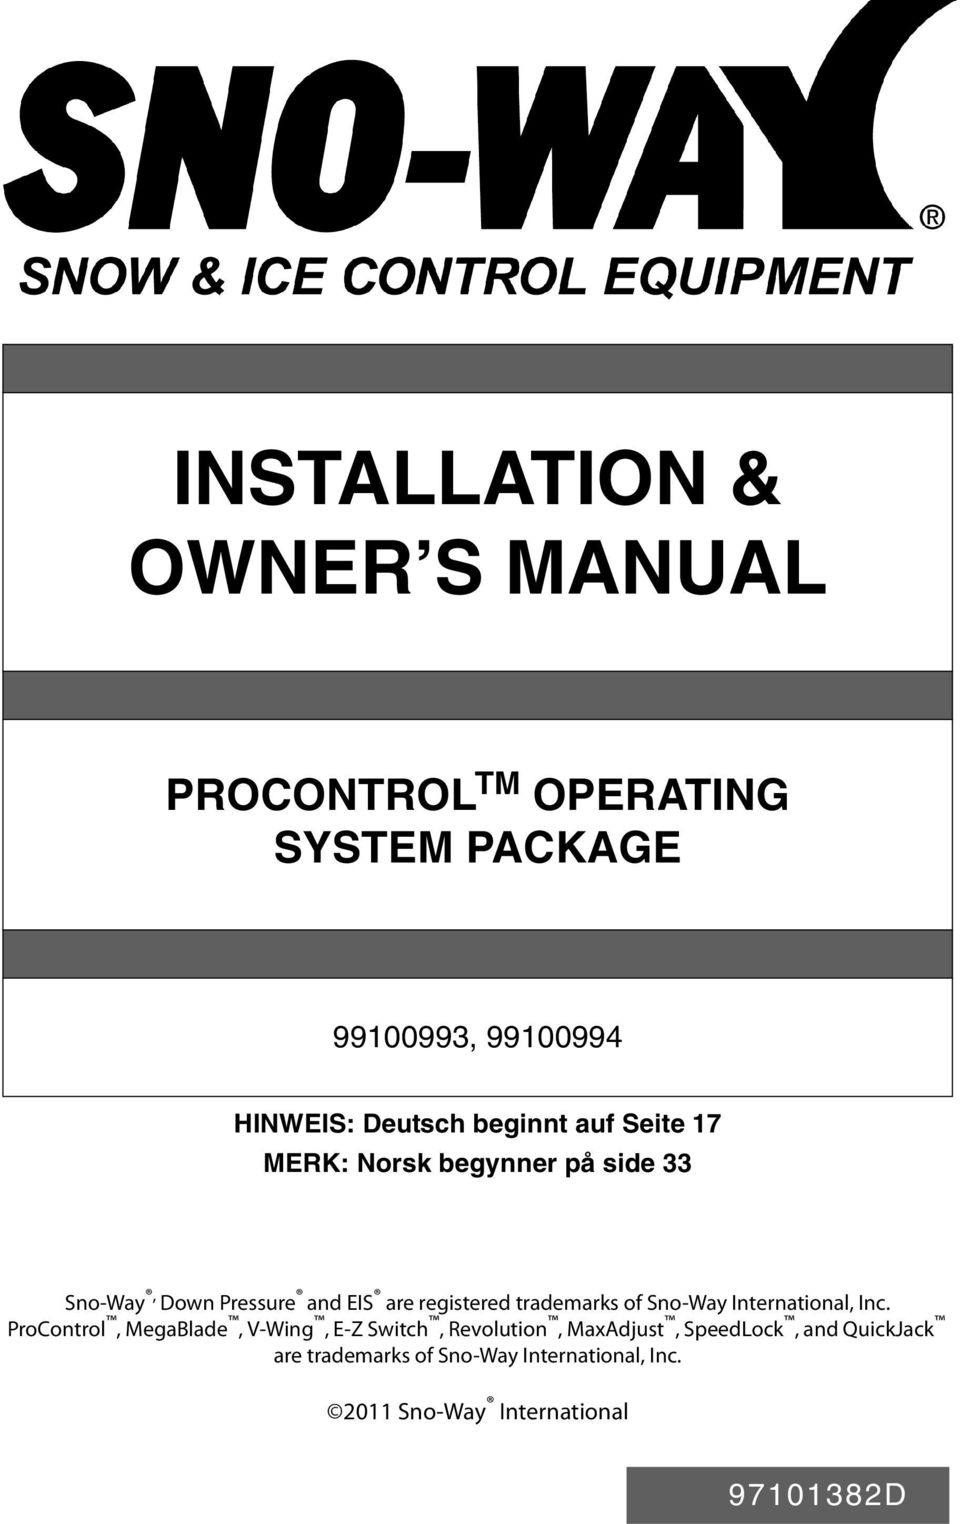 INSTALLATION & OWNER S MANUAL - PDF